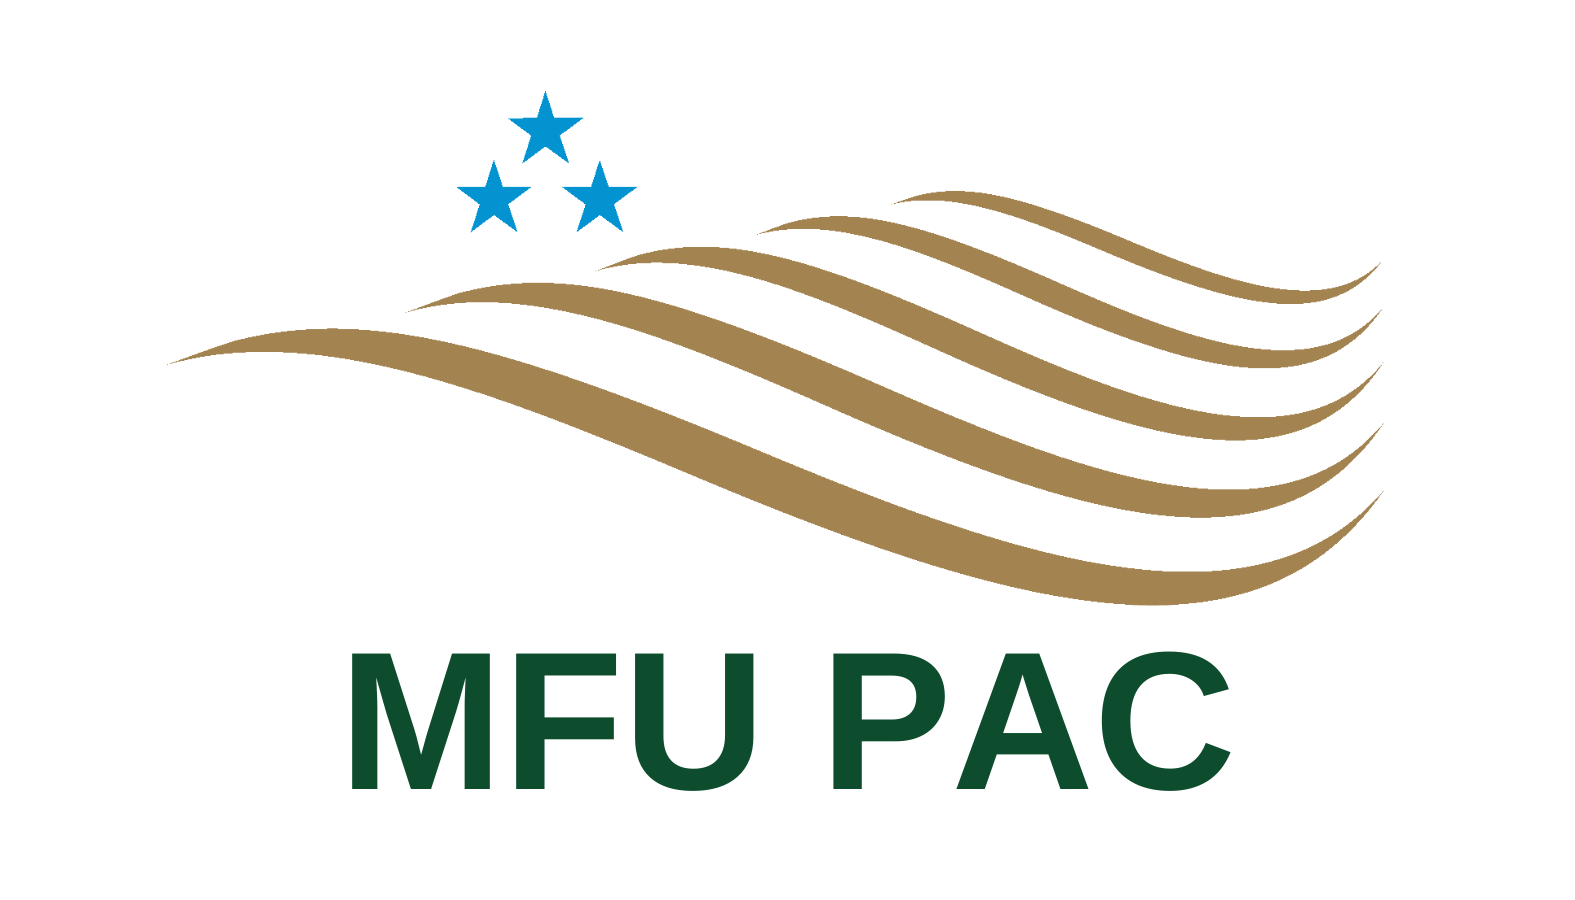 https://katywestlund.com/wp-content/uploads/sites/3/2020/10/MFU-PAC-Logo.png